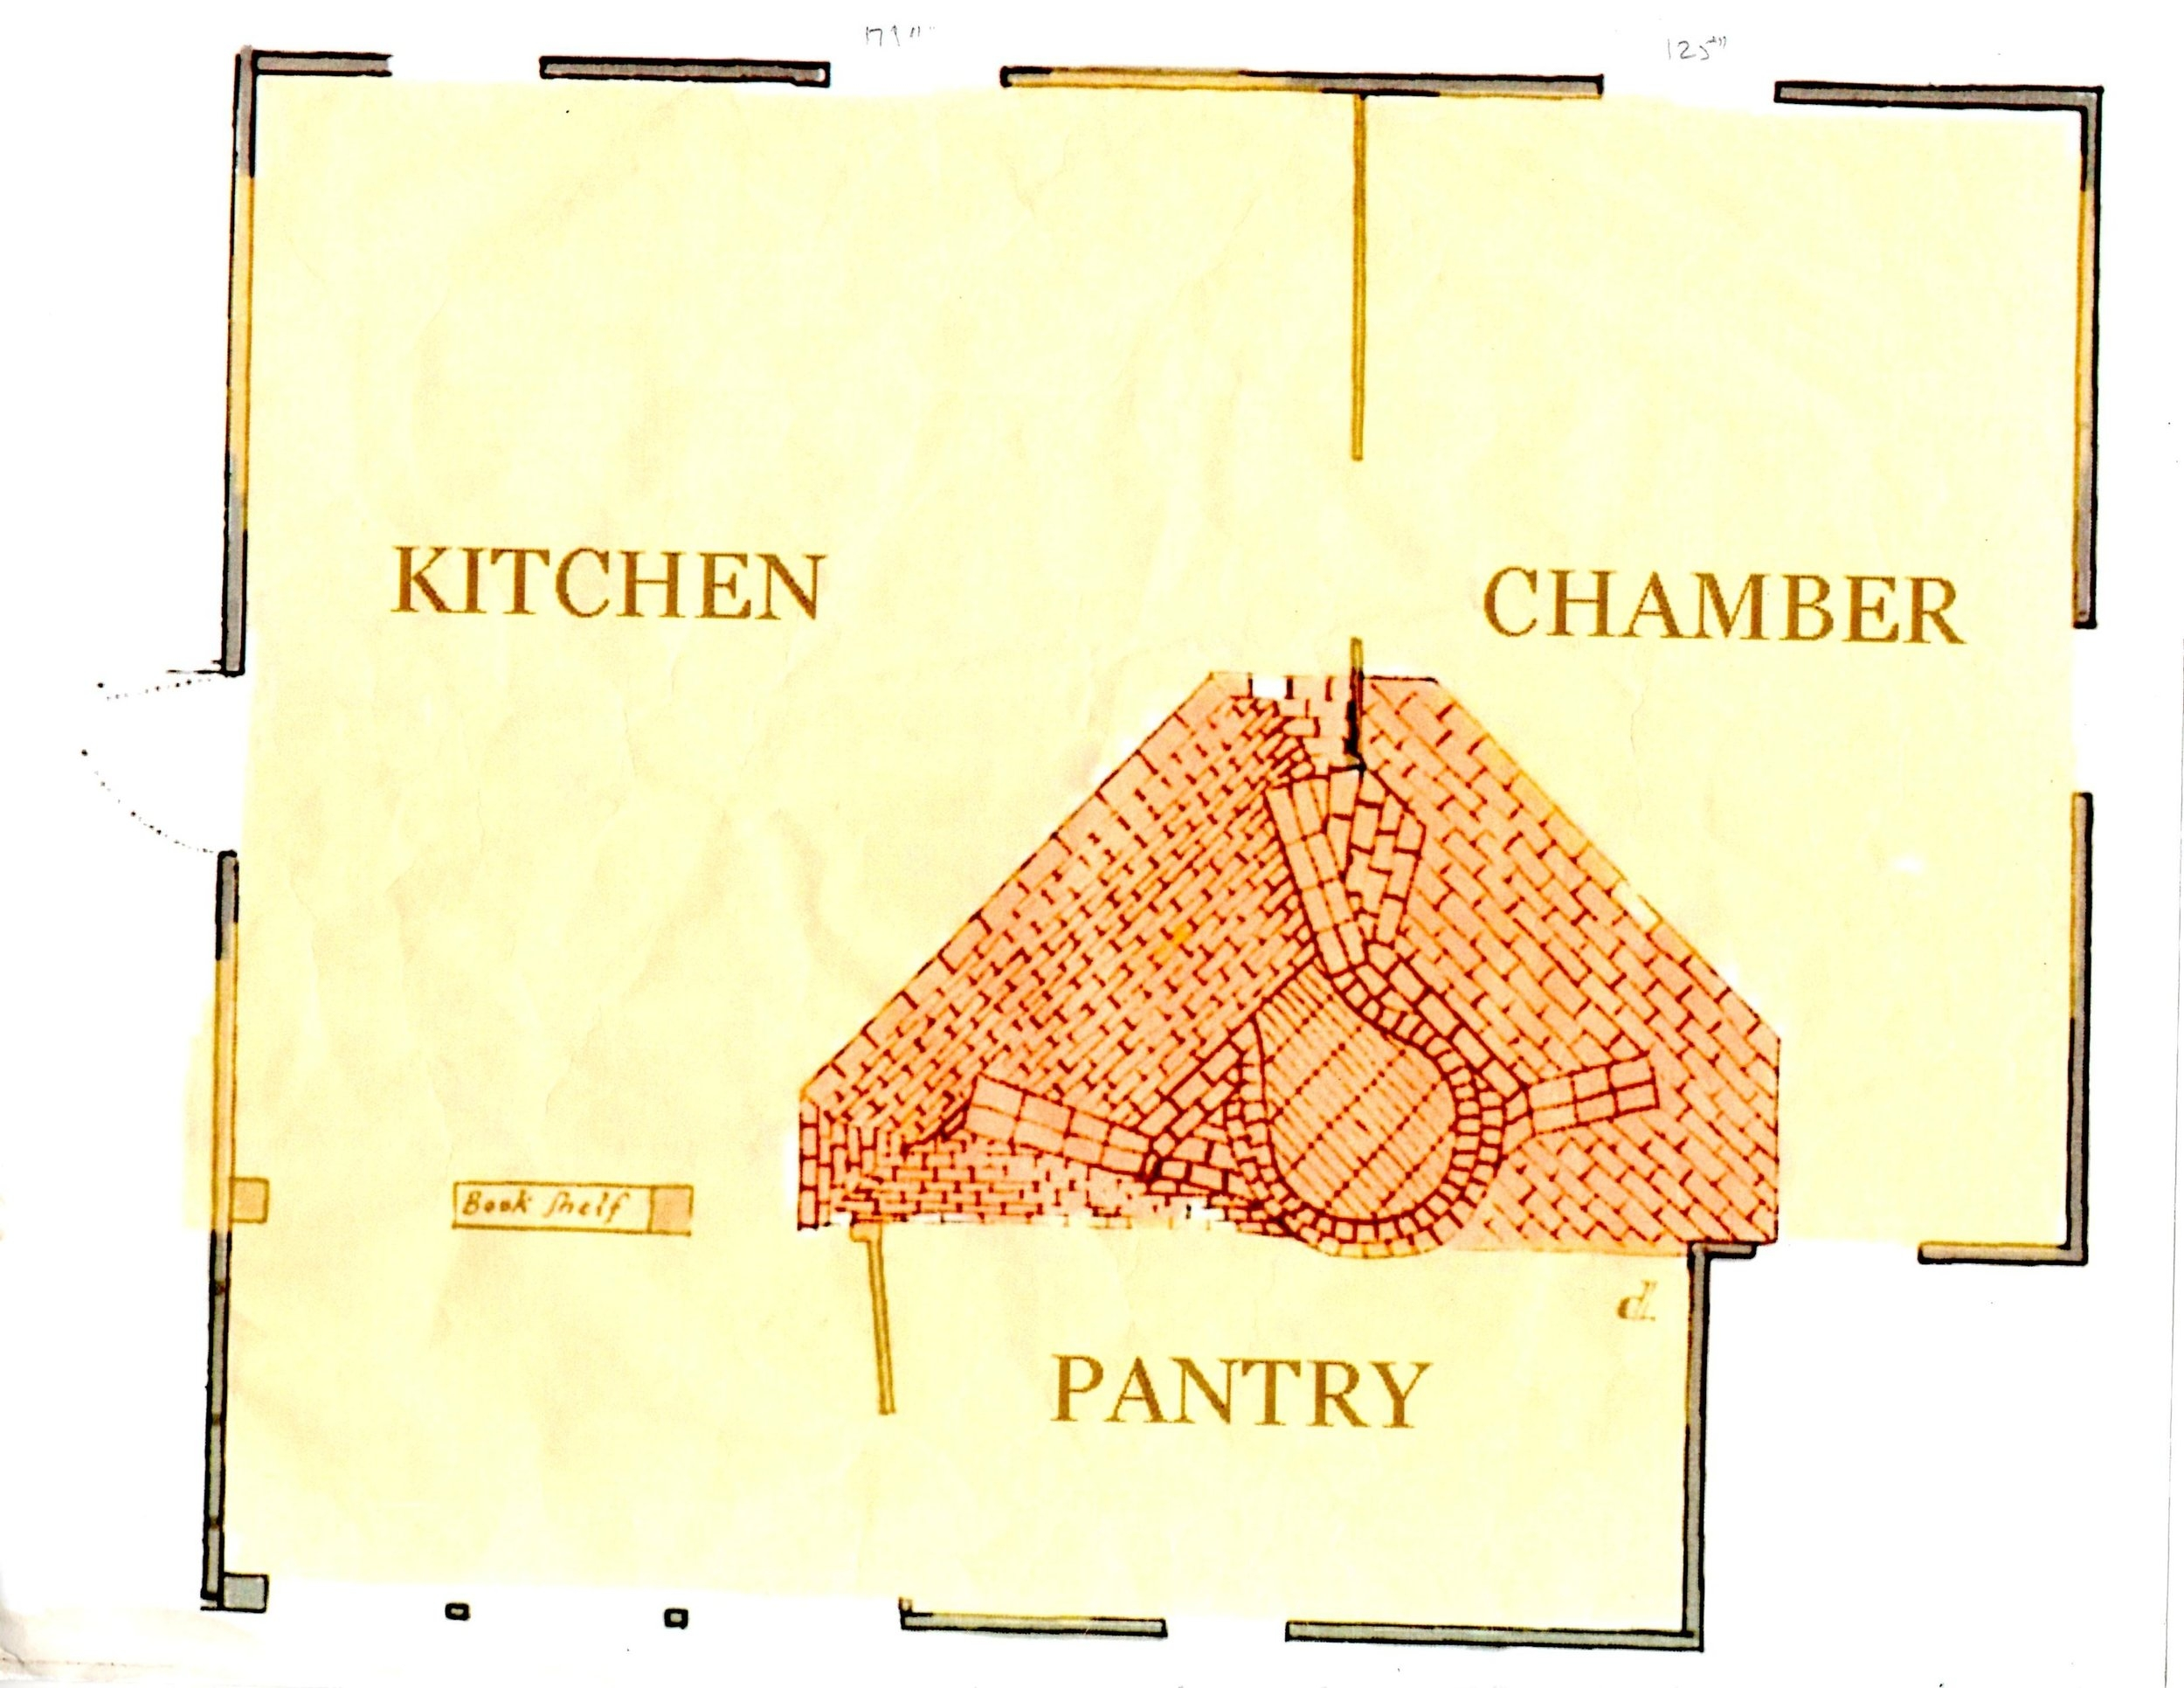 While there are no surviving images of the First House, this is the floor plan.